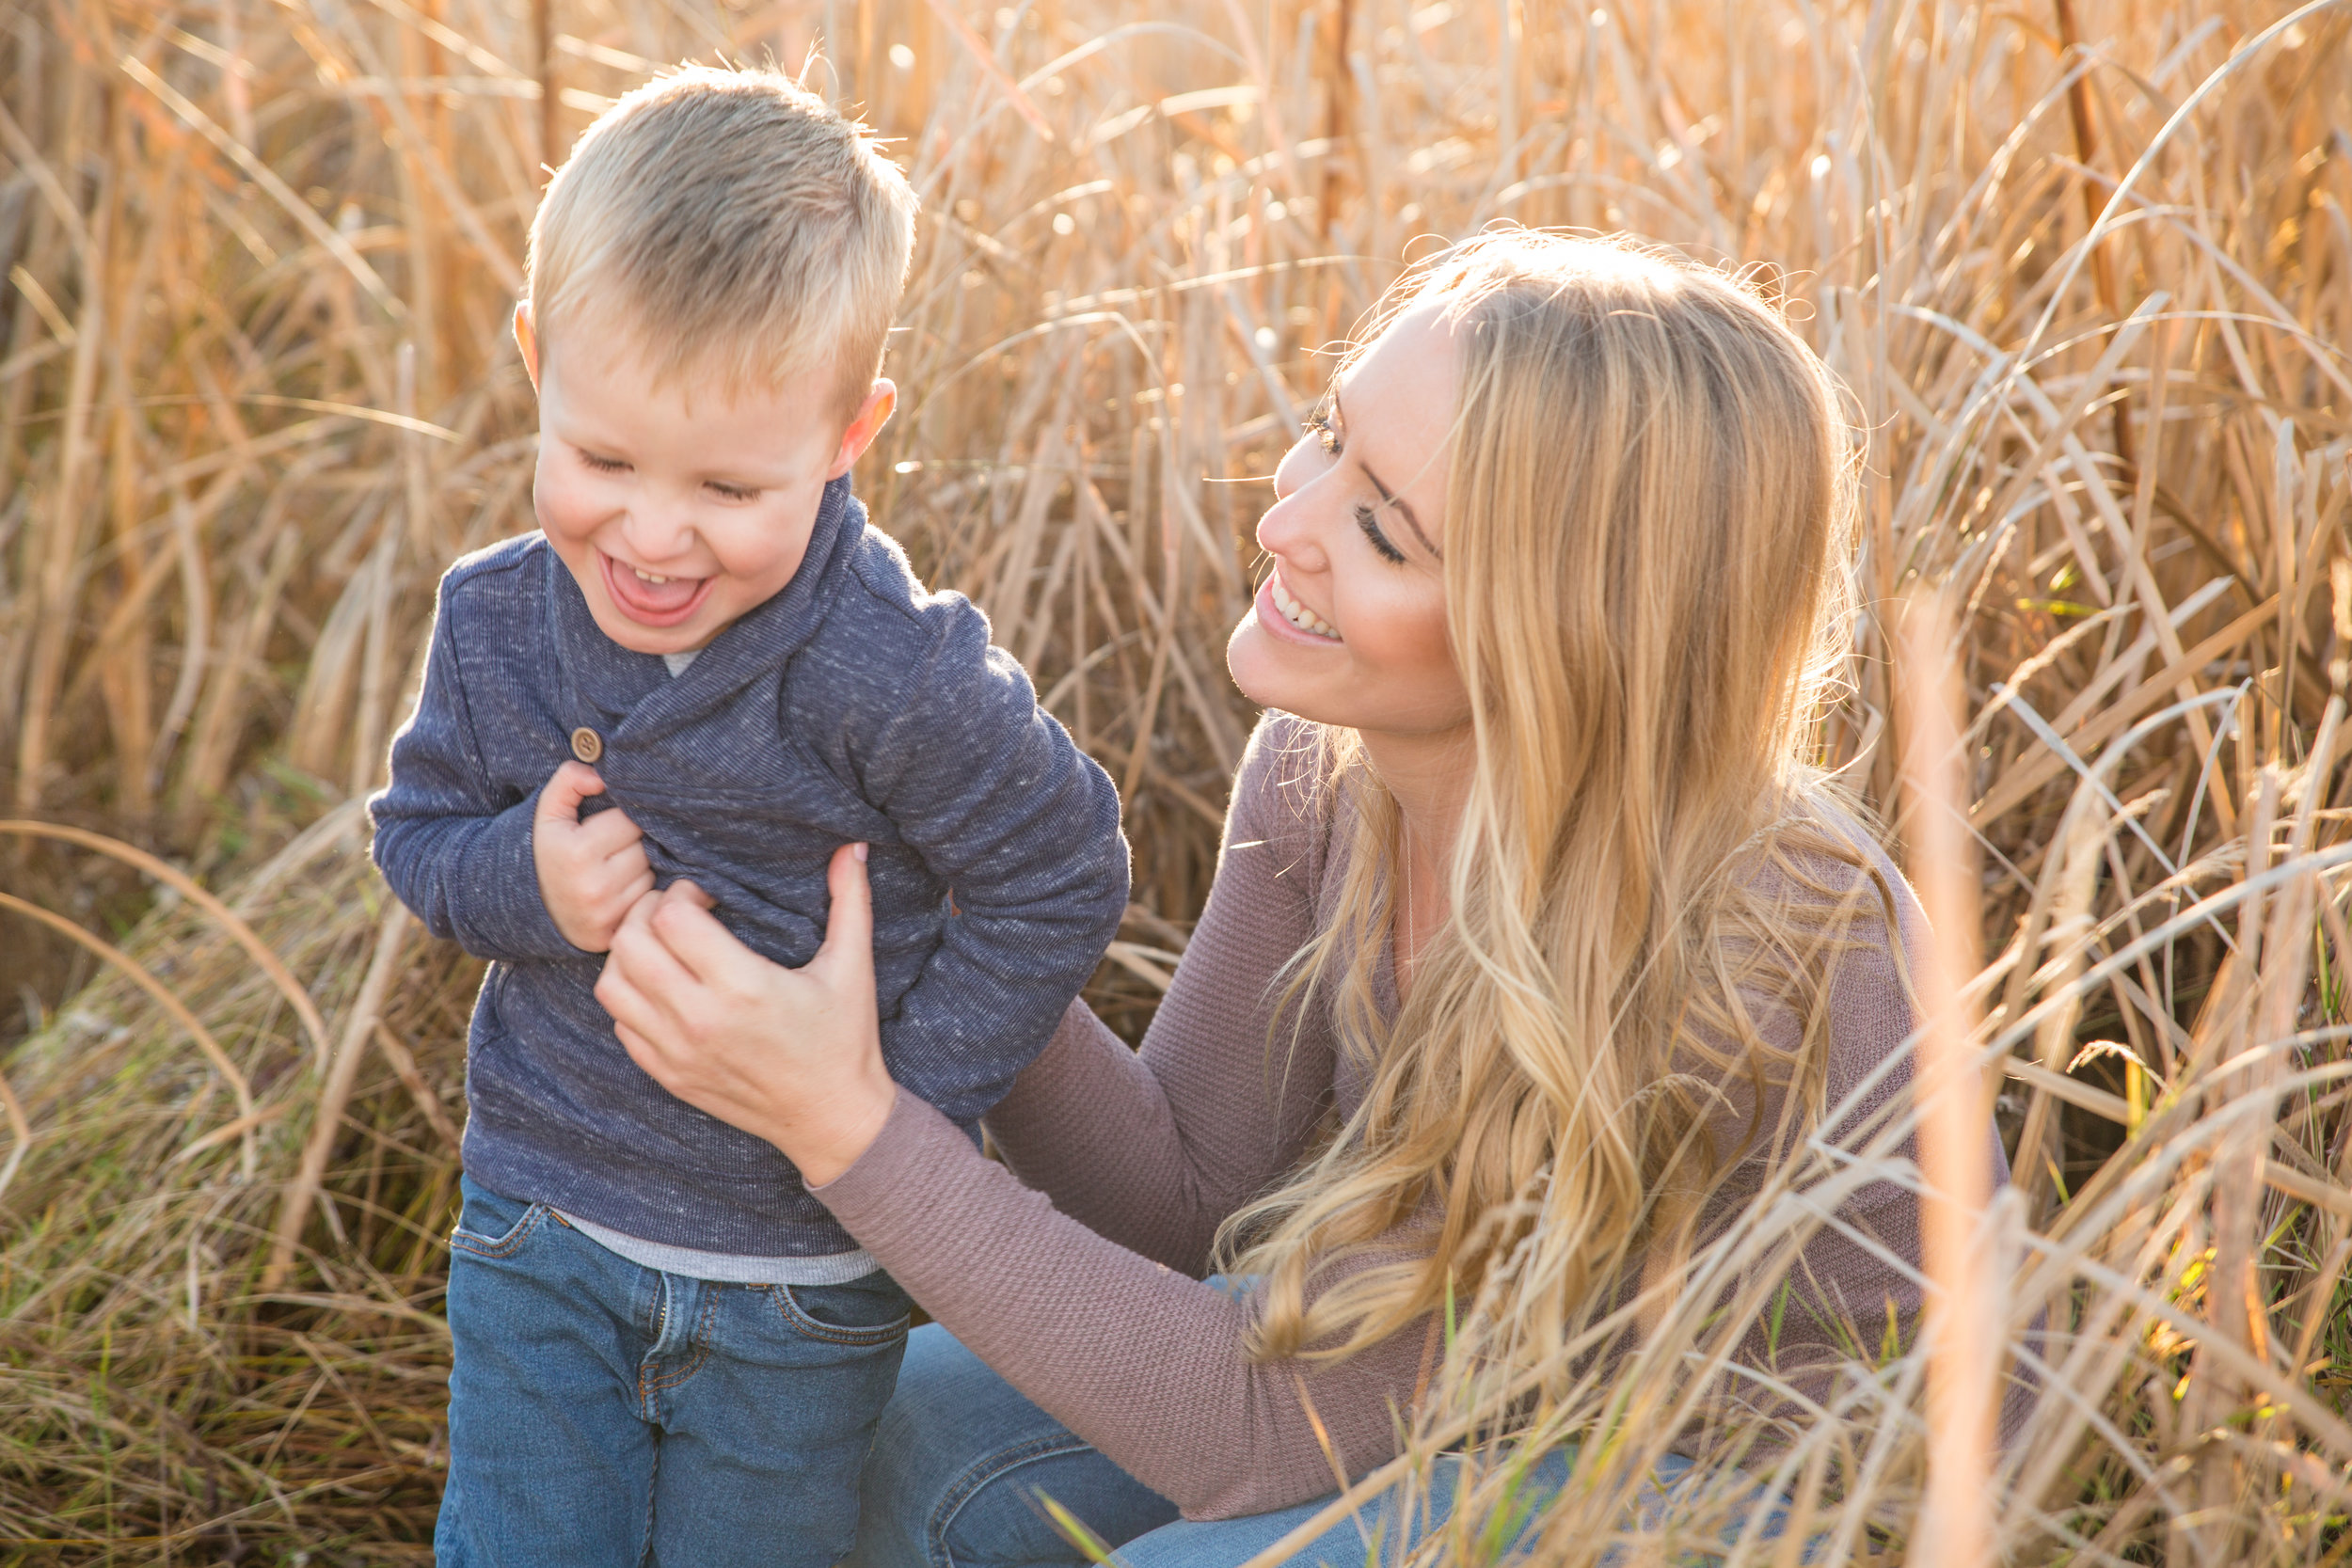 I am forever grateful to Paige. - She captured myself and my two boys perfectly. I am so beyond pleased with the photos, I can't wait to frame them and show them to everyone. My boys are very active little boys and Paige was so patient working with them that it took away my stress, I was able to enjoy the shoot and be in the moment.-Katie Dunn